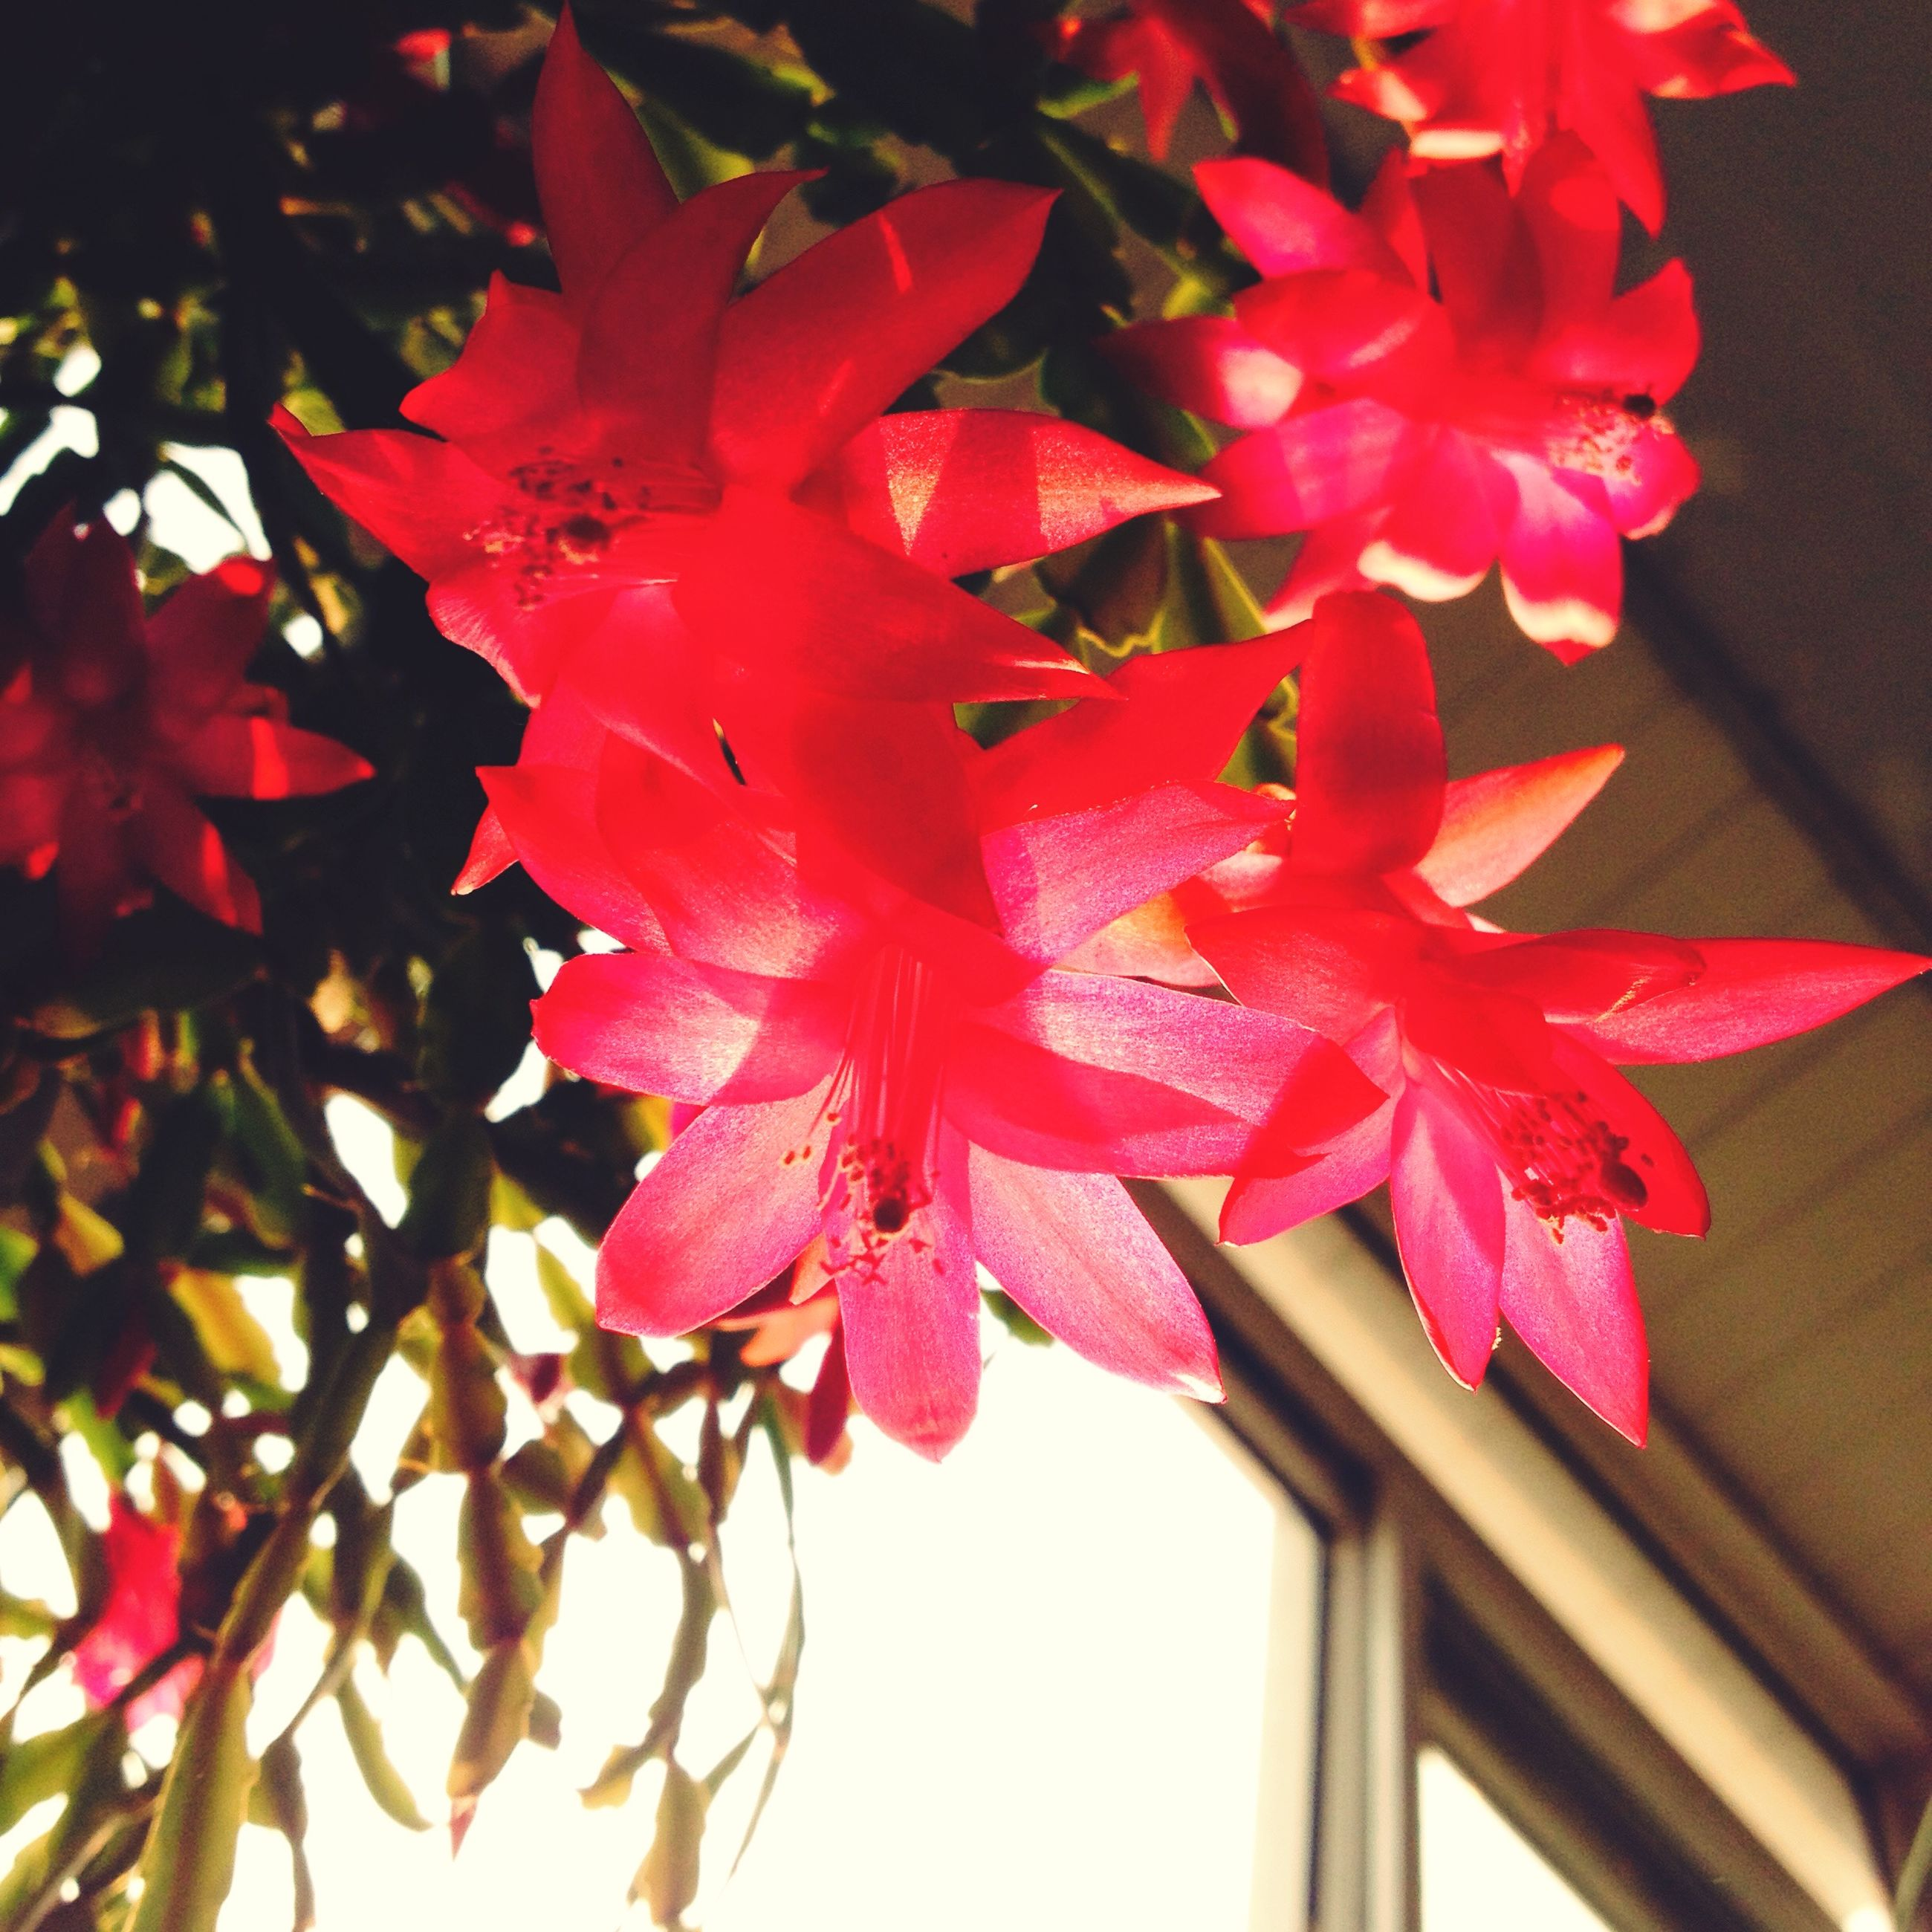 flower, petal, freshness, fragility, flower head, growth, beauty in nature, red, close-up, plant, nature, blooming, focus on foreground, leaf, in bloom, pink color, indoors, pollen, no people, blossom